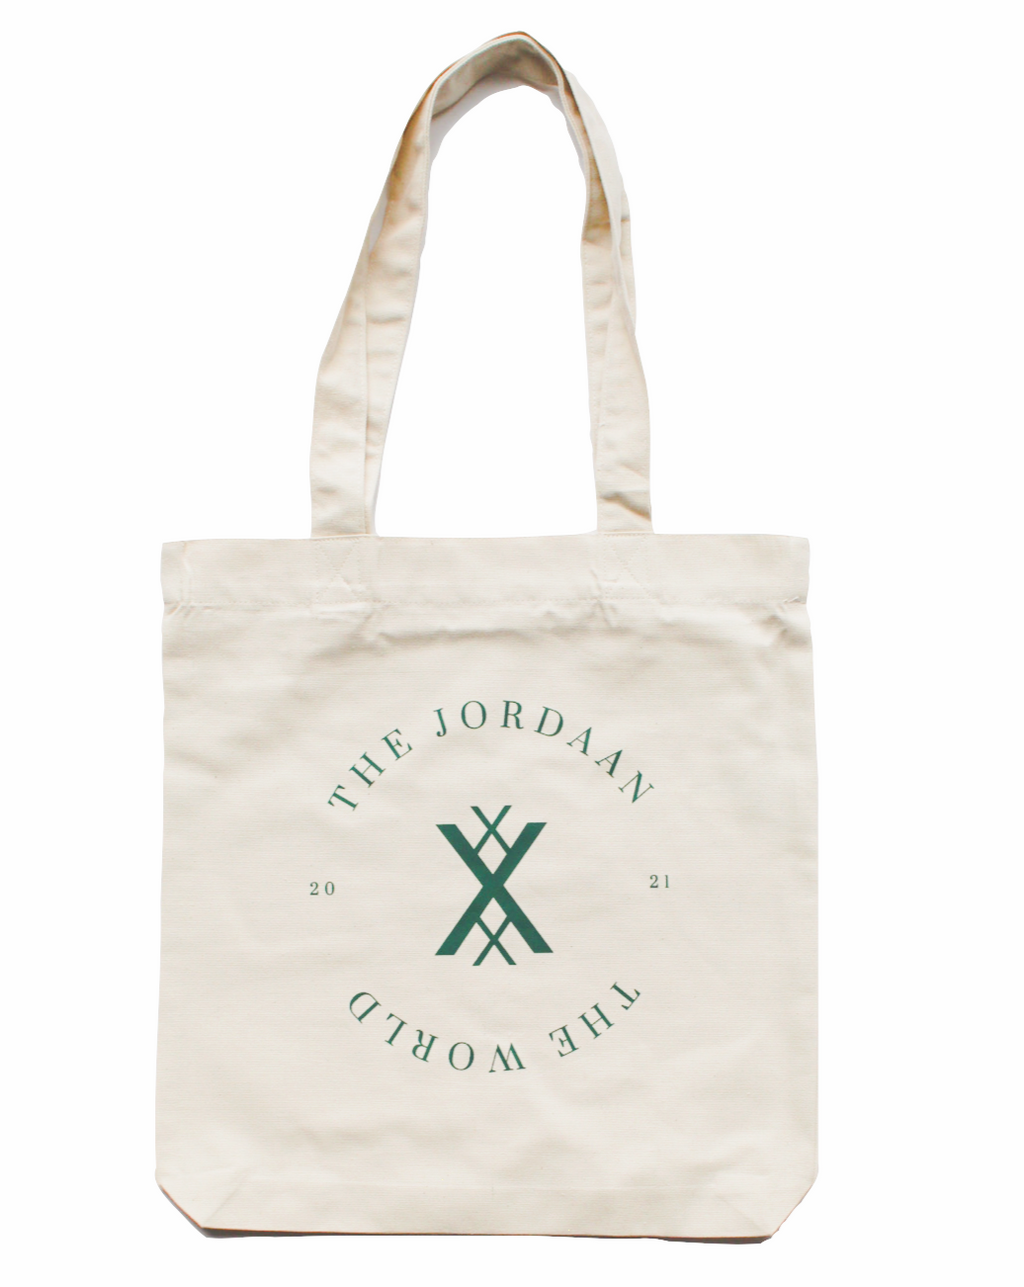 TOTE THE JORDAAN X THE WORLD